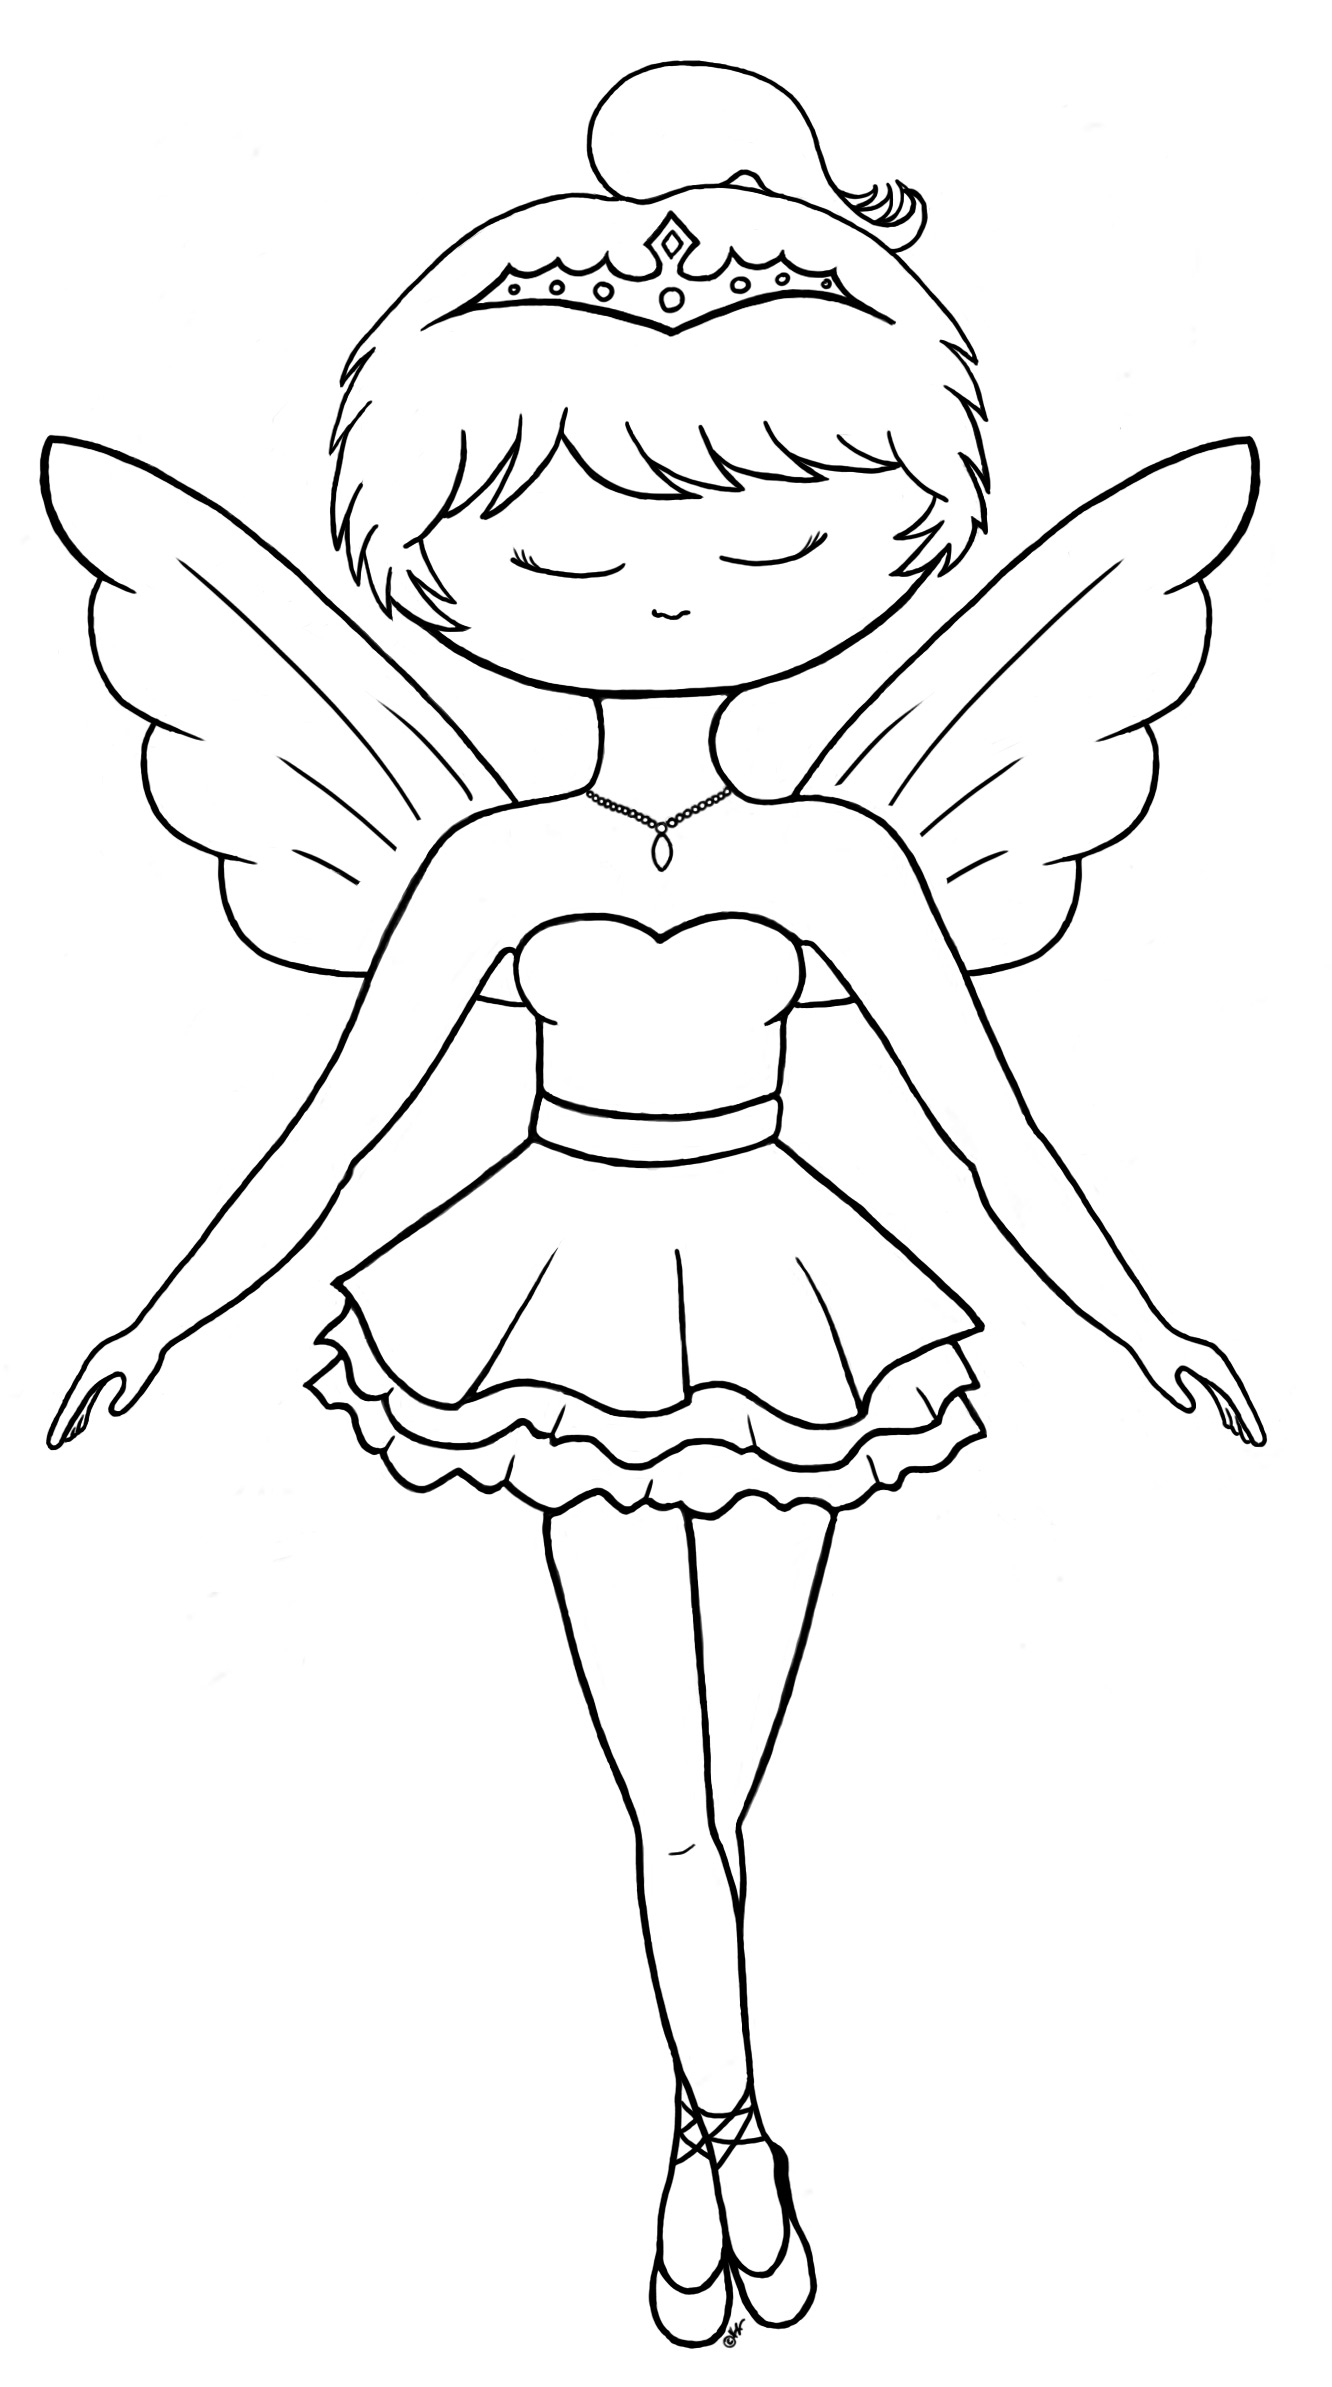 ballerina color pages strawberry shortcake ballerina coloring page free color ballerina pages